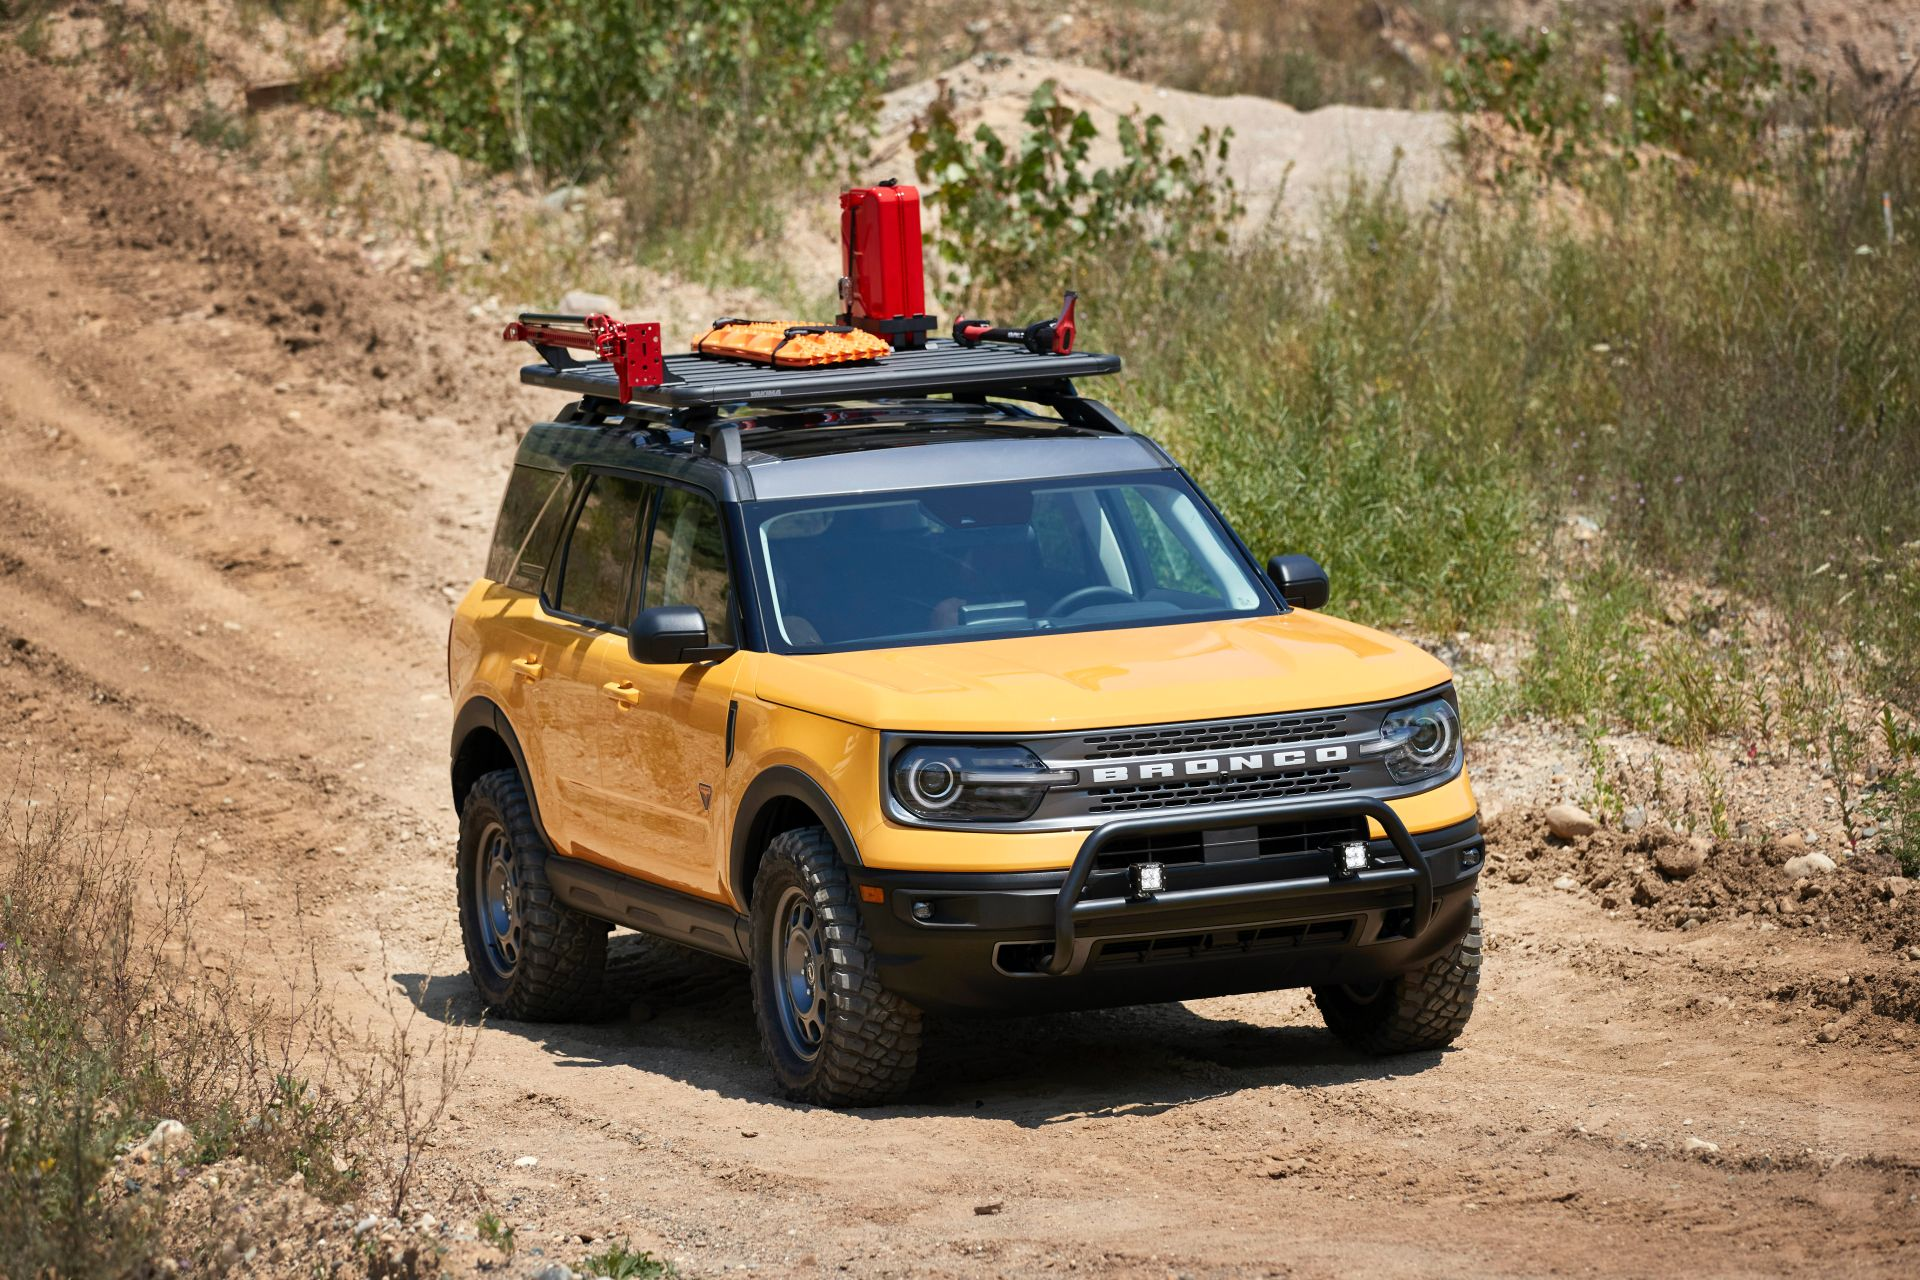 Ford-Bronco-Sport-Trail-Rig-Concept-1